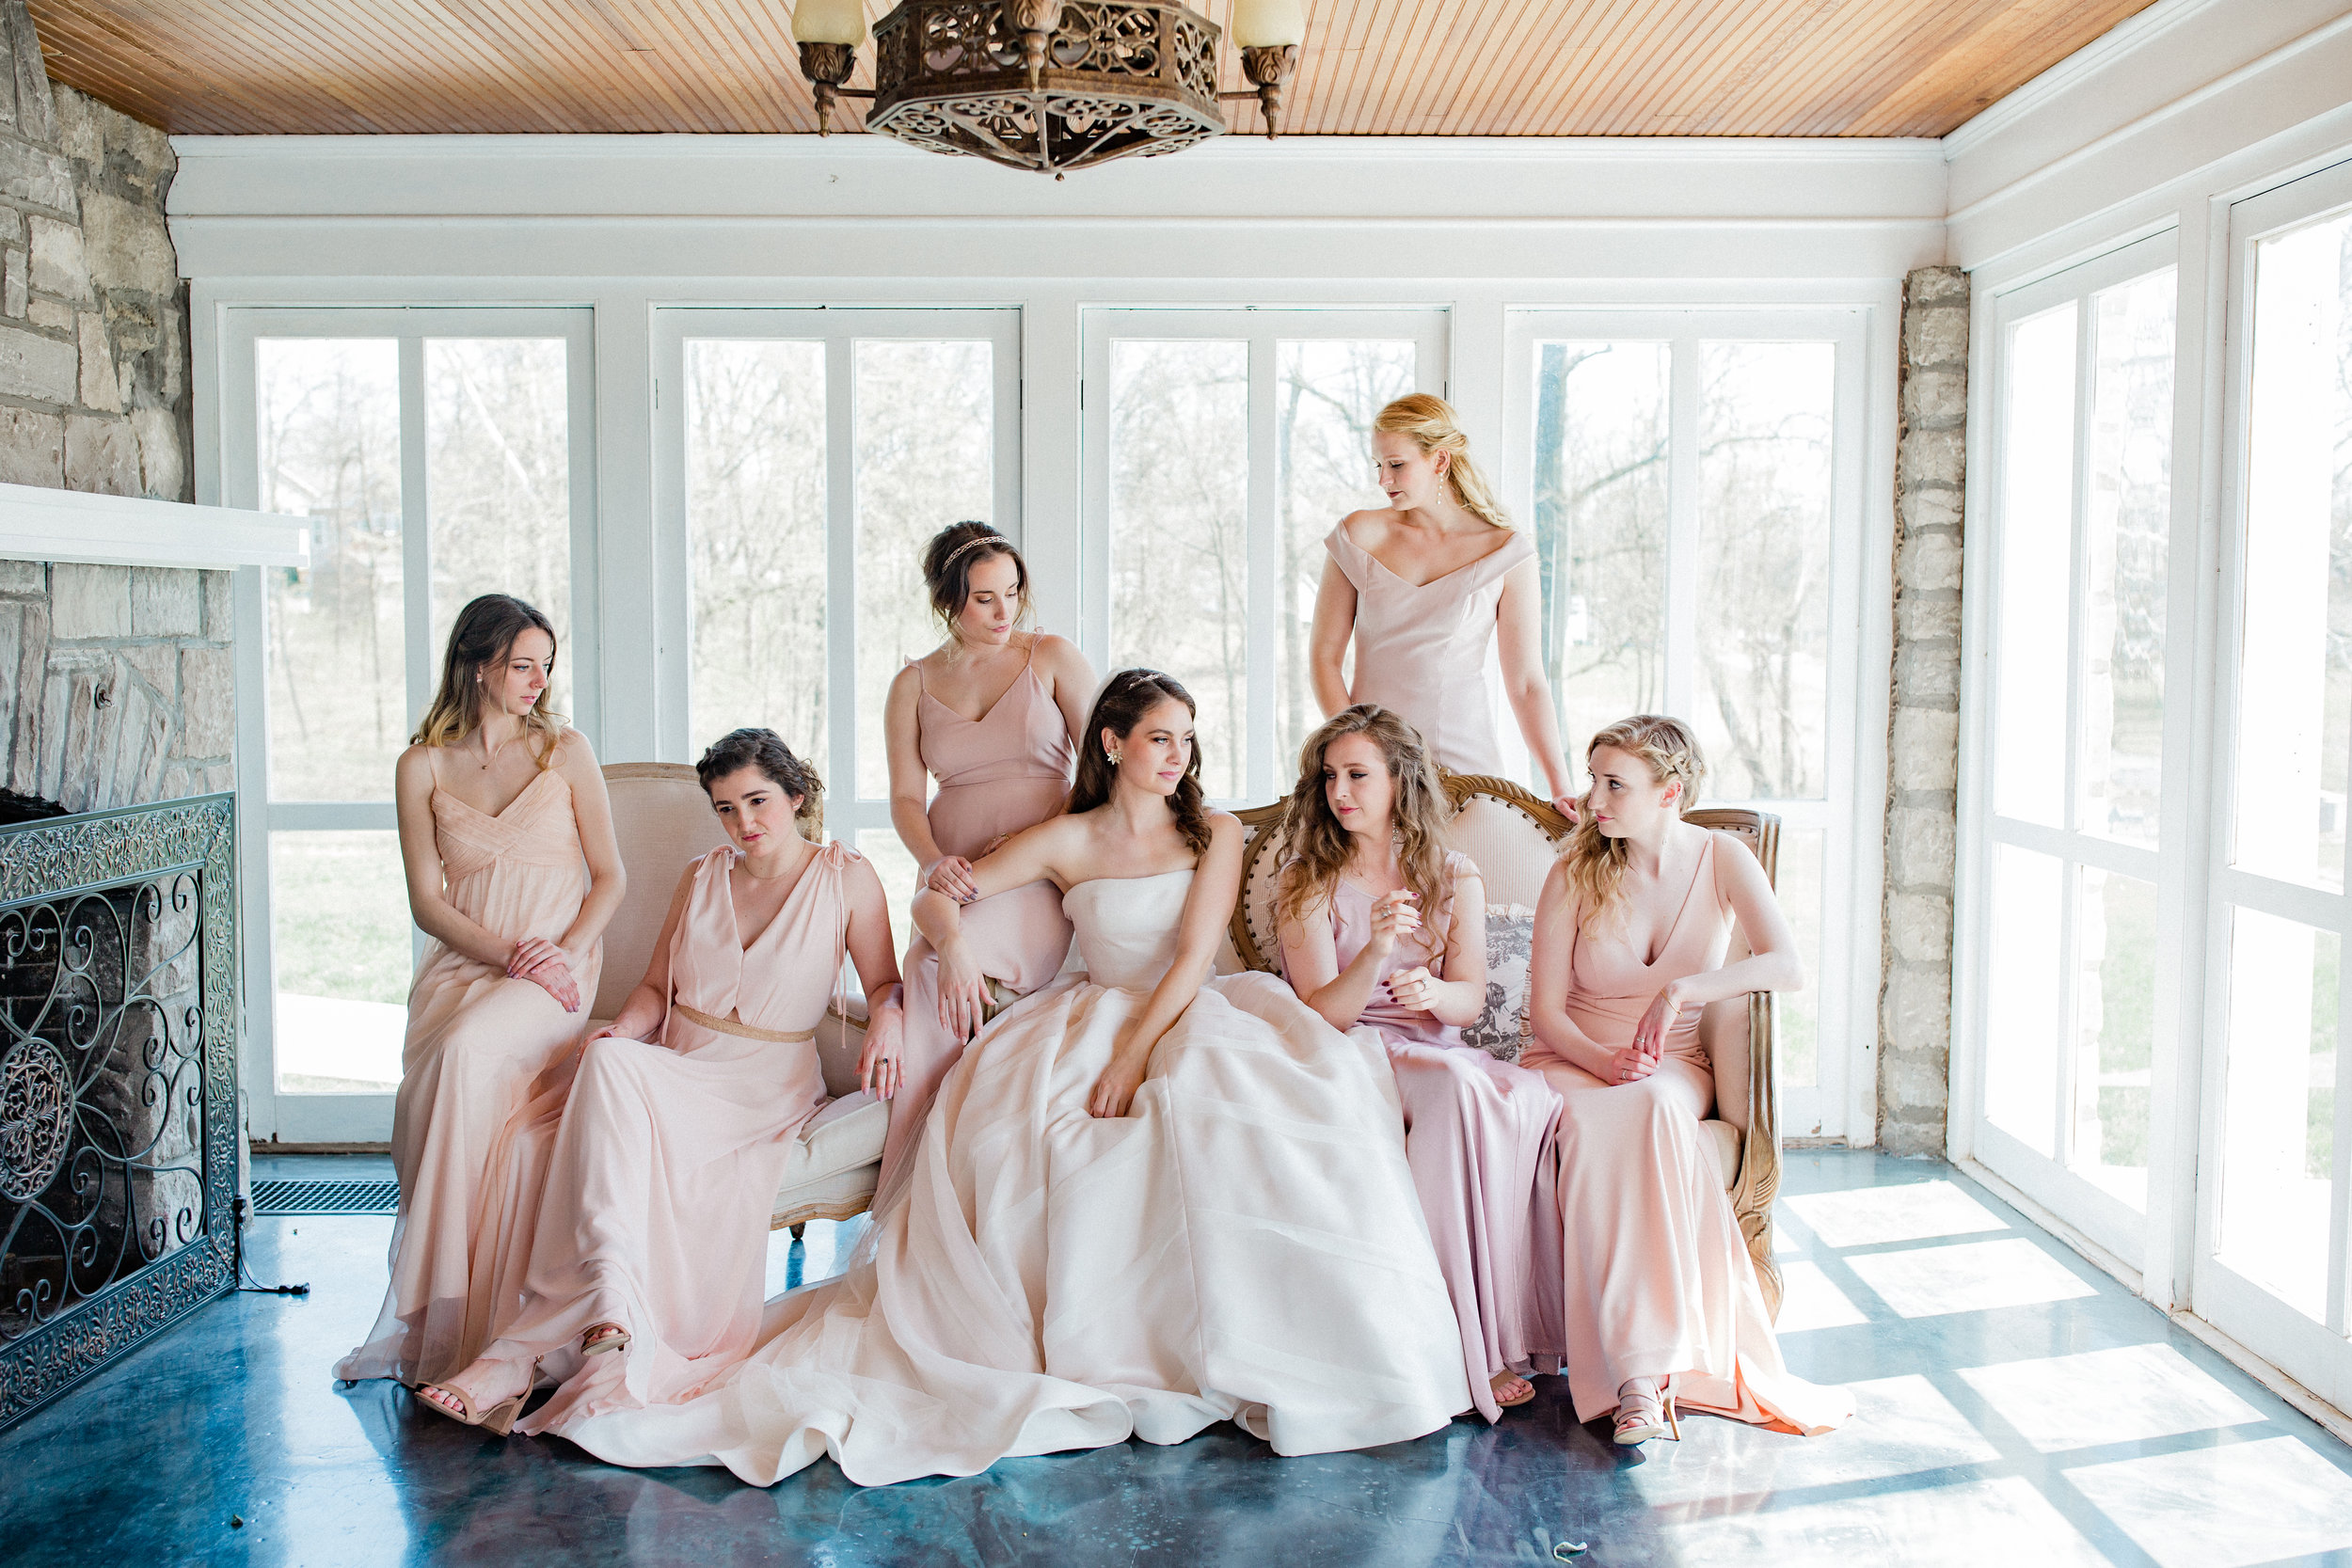 Dorothy_Louise_Photography_Amanda_Ryan_Stone_House_St_Charles_Wedding-9610.jpg